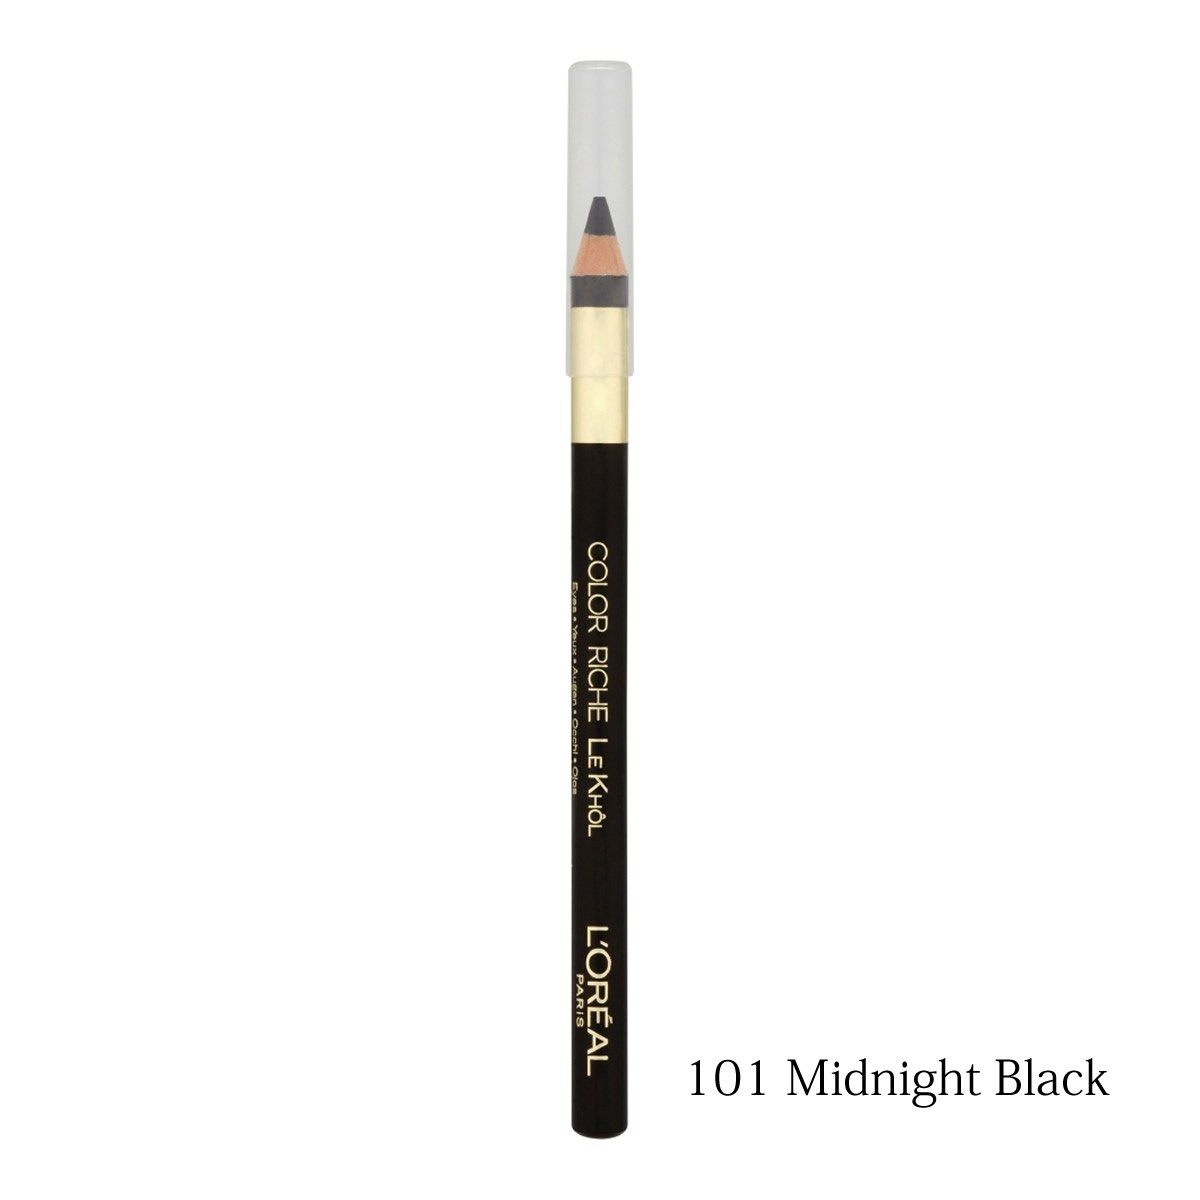 L'Oreal Paris Color Riche Le Khol Eyeliner